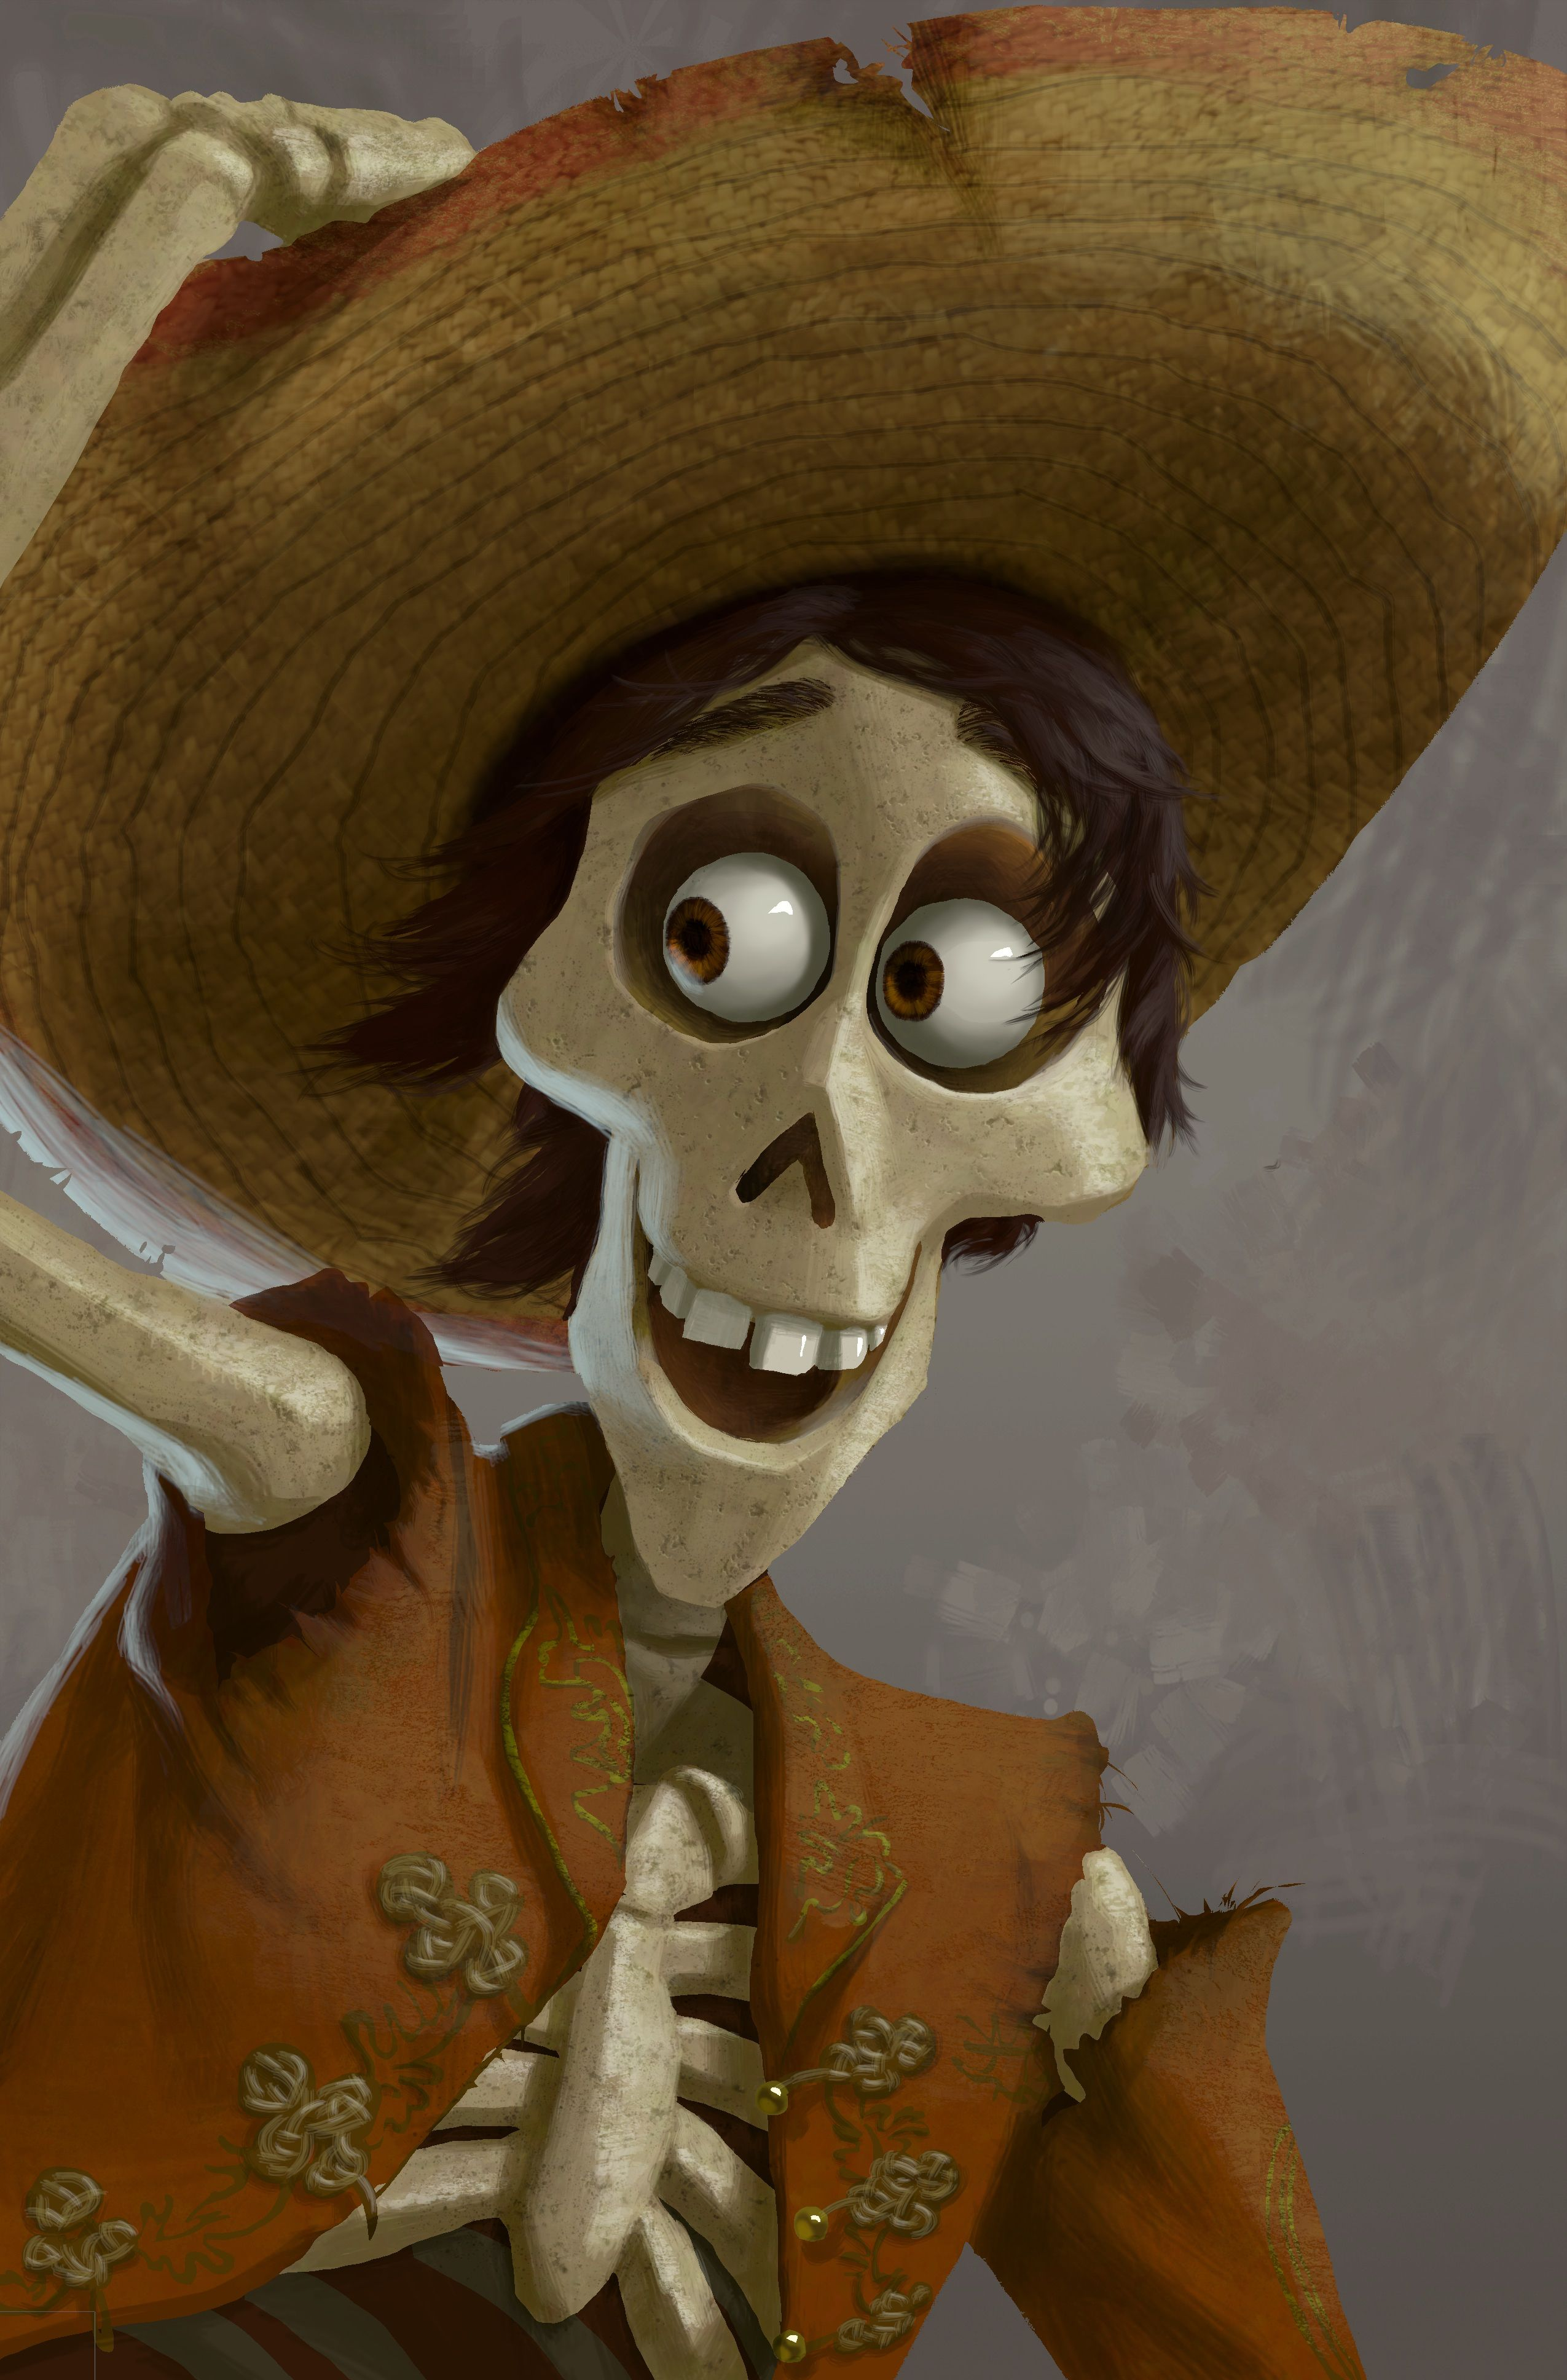 10 Things The Creators Of Coco Had To Decide While Creating The Coco Skeletons And Bring Them To Life #PixarCoco #pixarCocoEvent | Dazzling Daily Deals